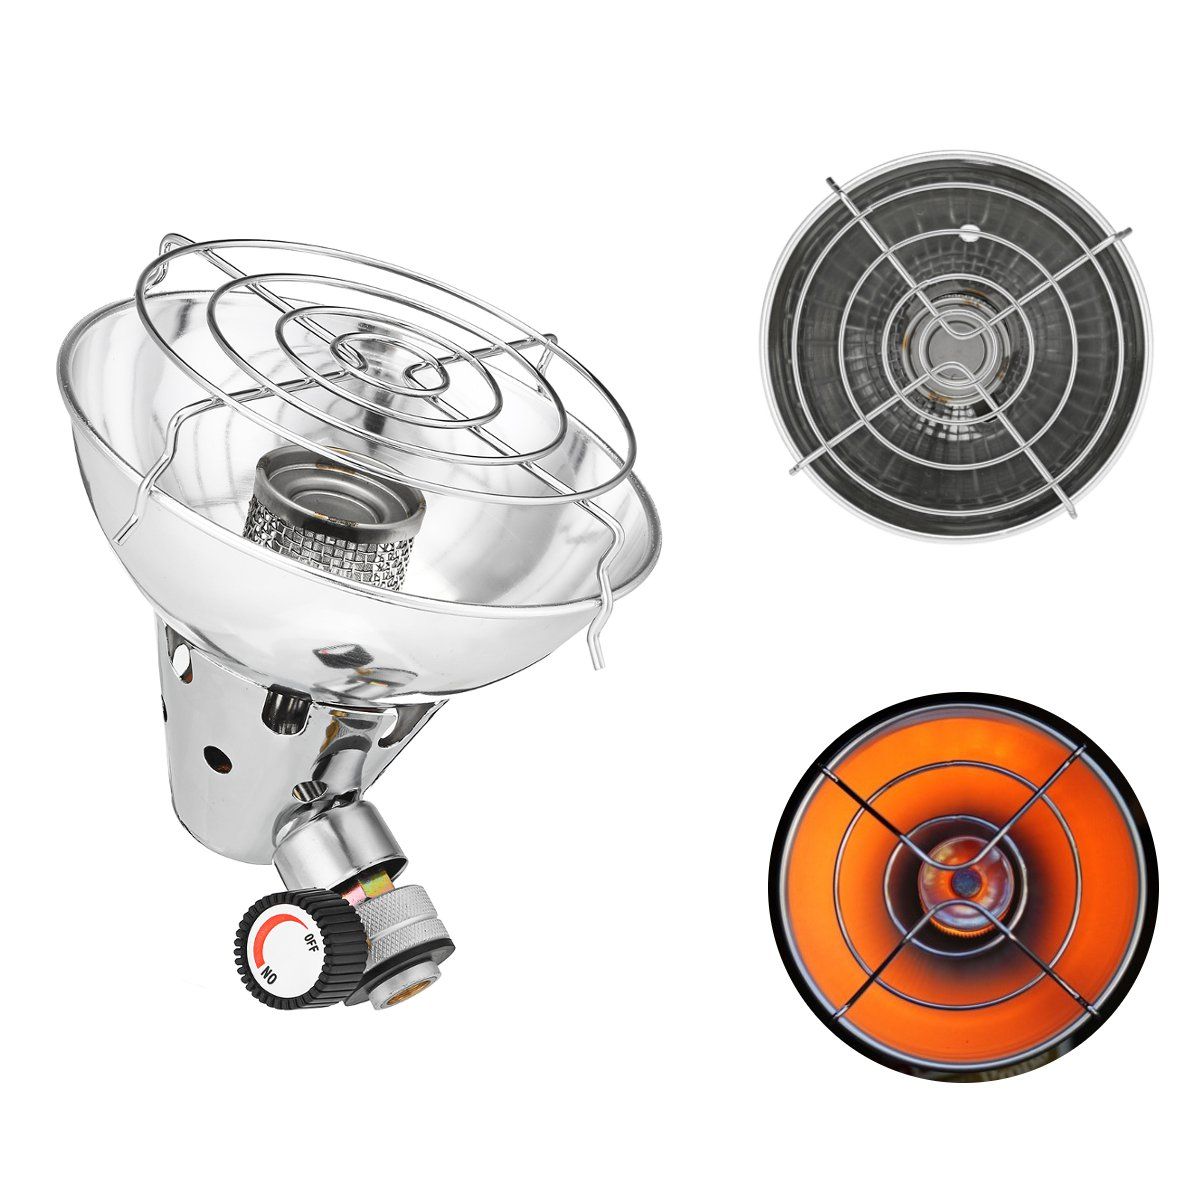 Kuinayouyi Outdoor Heat Cooker Gas Heater Camping Heating Aluminum Alloy Portable Camping Tent Portable Gas Heater Stove Tent Accessories